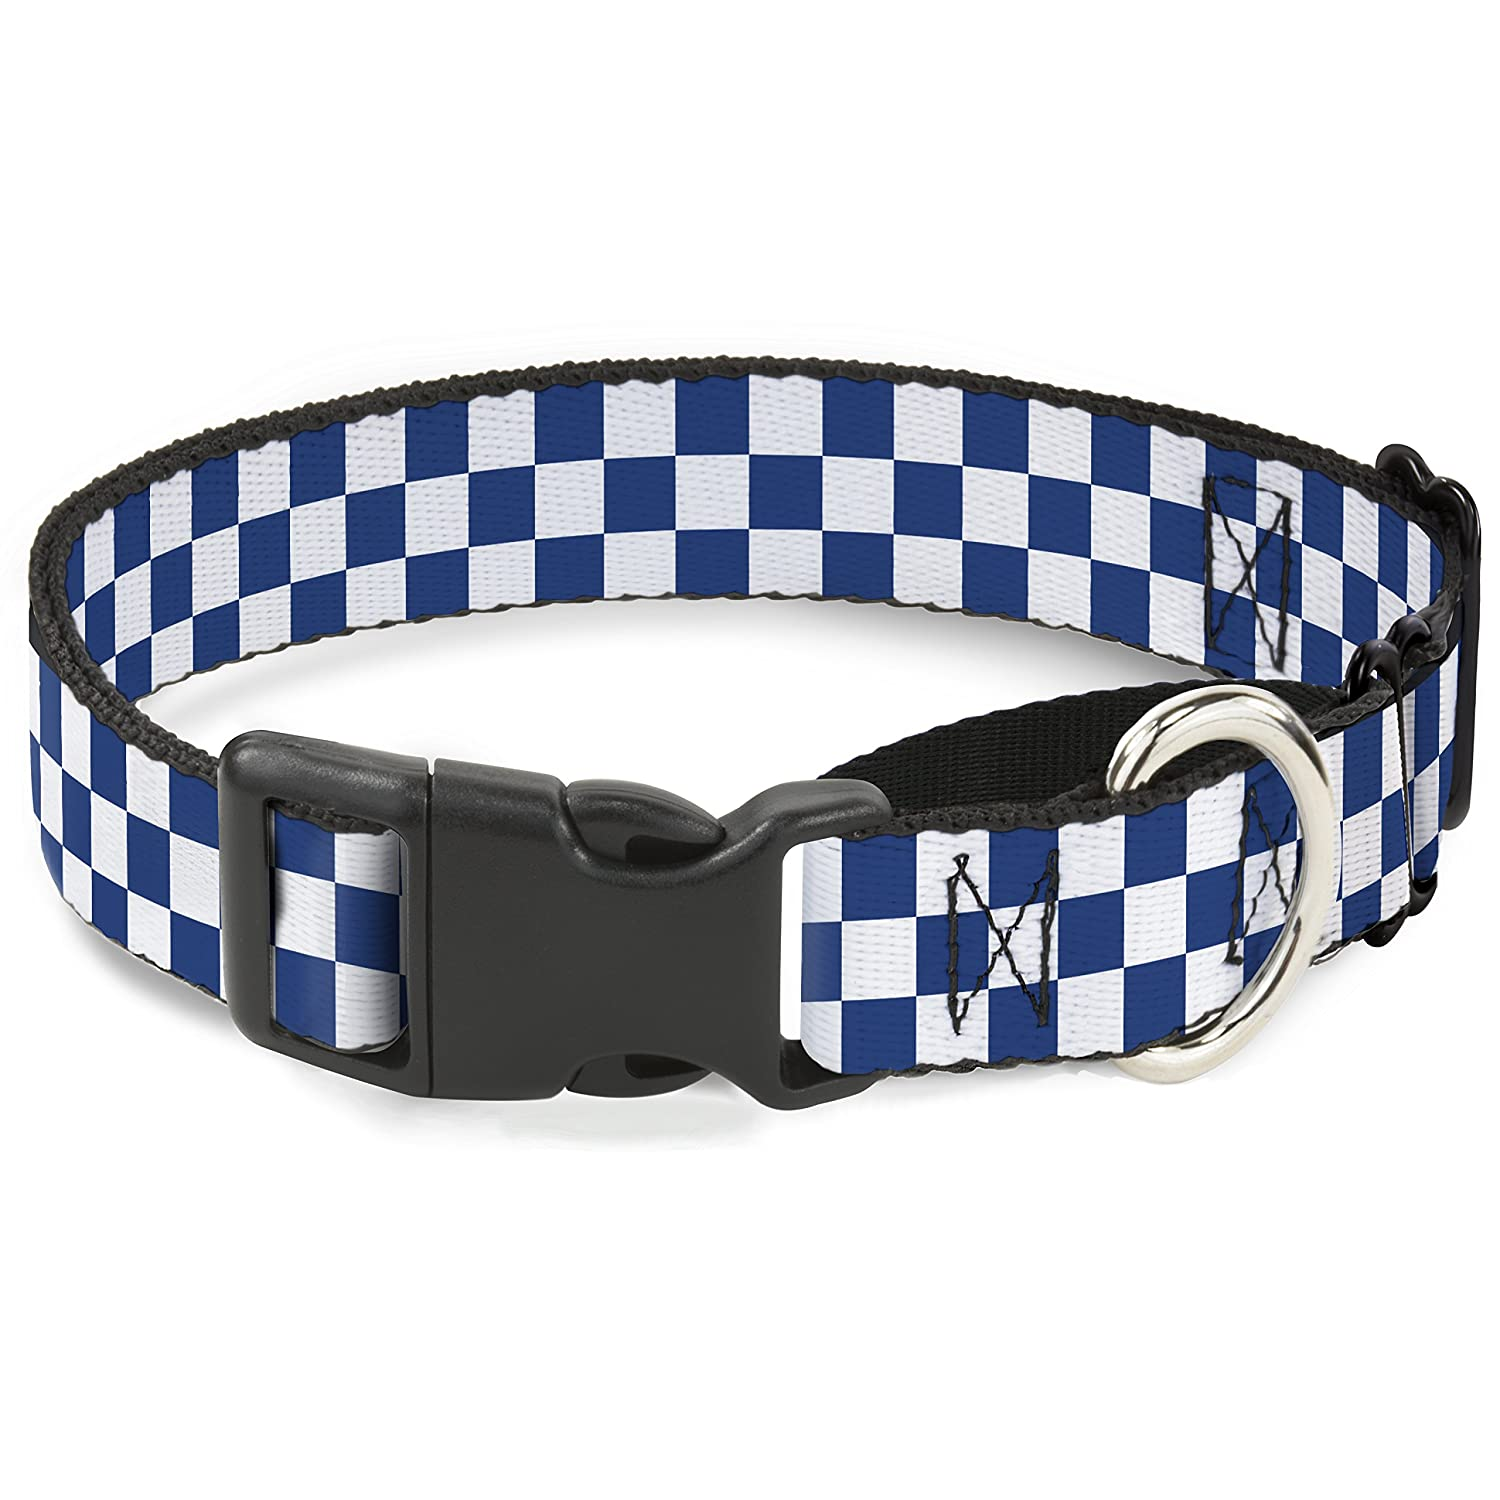 Buckle-Down Checker blueeku White Martingale Dog Collar, 1  Wide-Fits 11-17  Neck-Medium